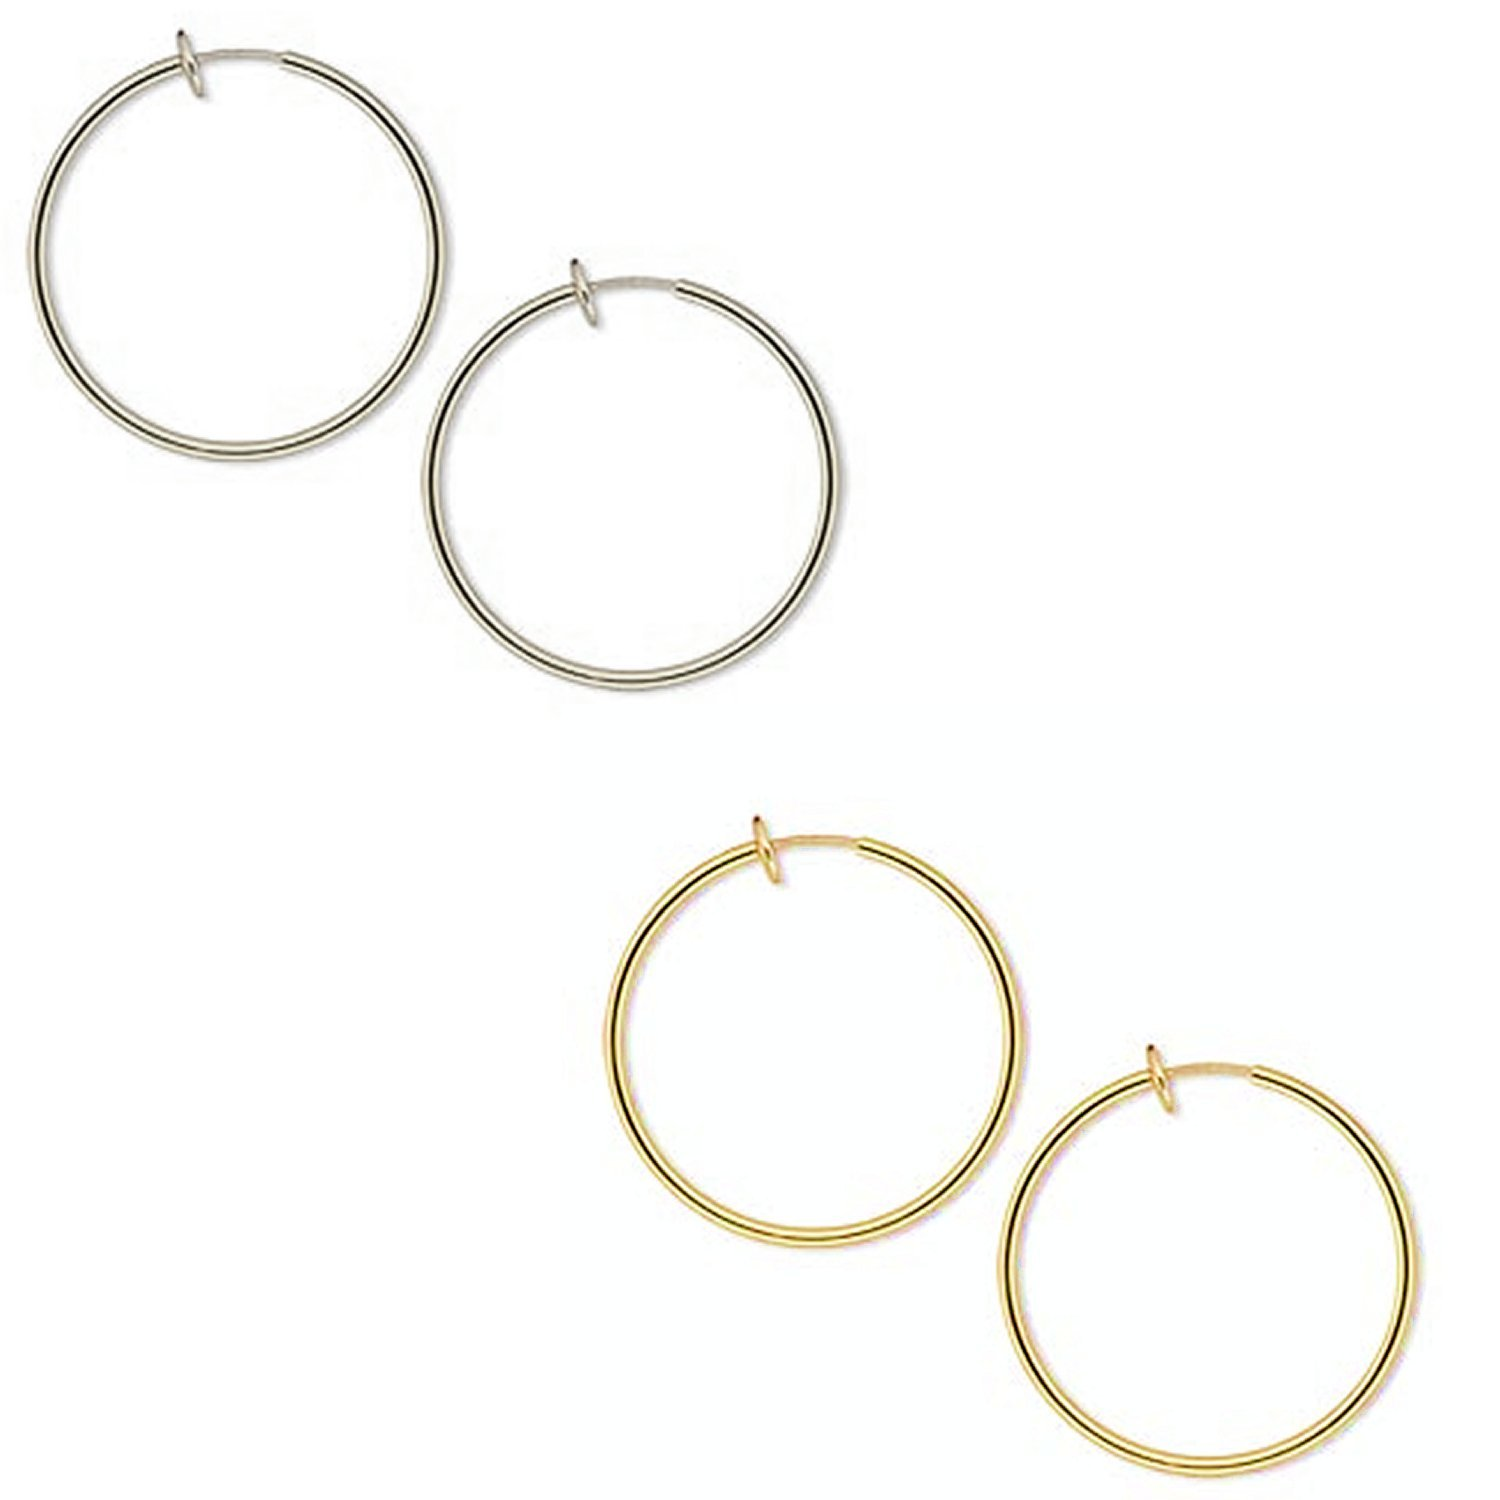 Gold Plated Brass Spring Hoops Earrings Clip On-Small, Medium & Large Hoops for Women & Girls, Unpierced (Gold/Silver Large)